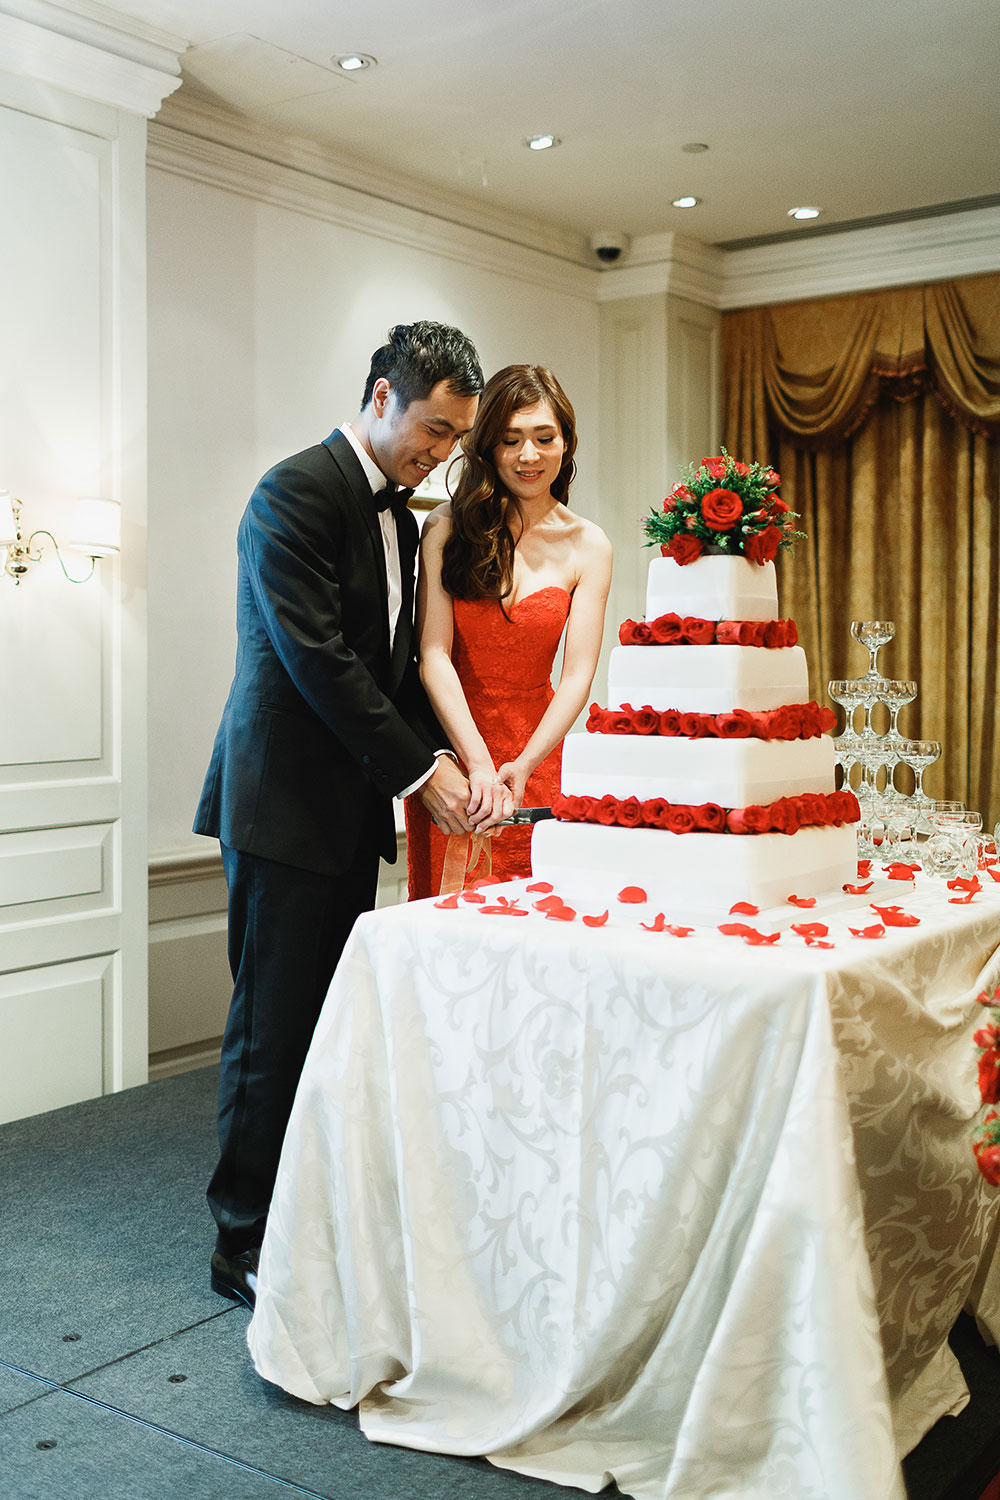 Singaore-Raffles-Hotel-Wedding-cake-cutting